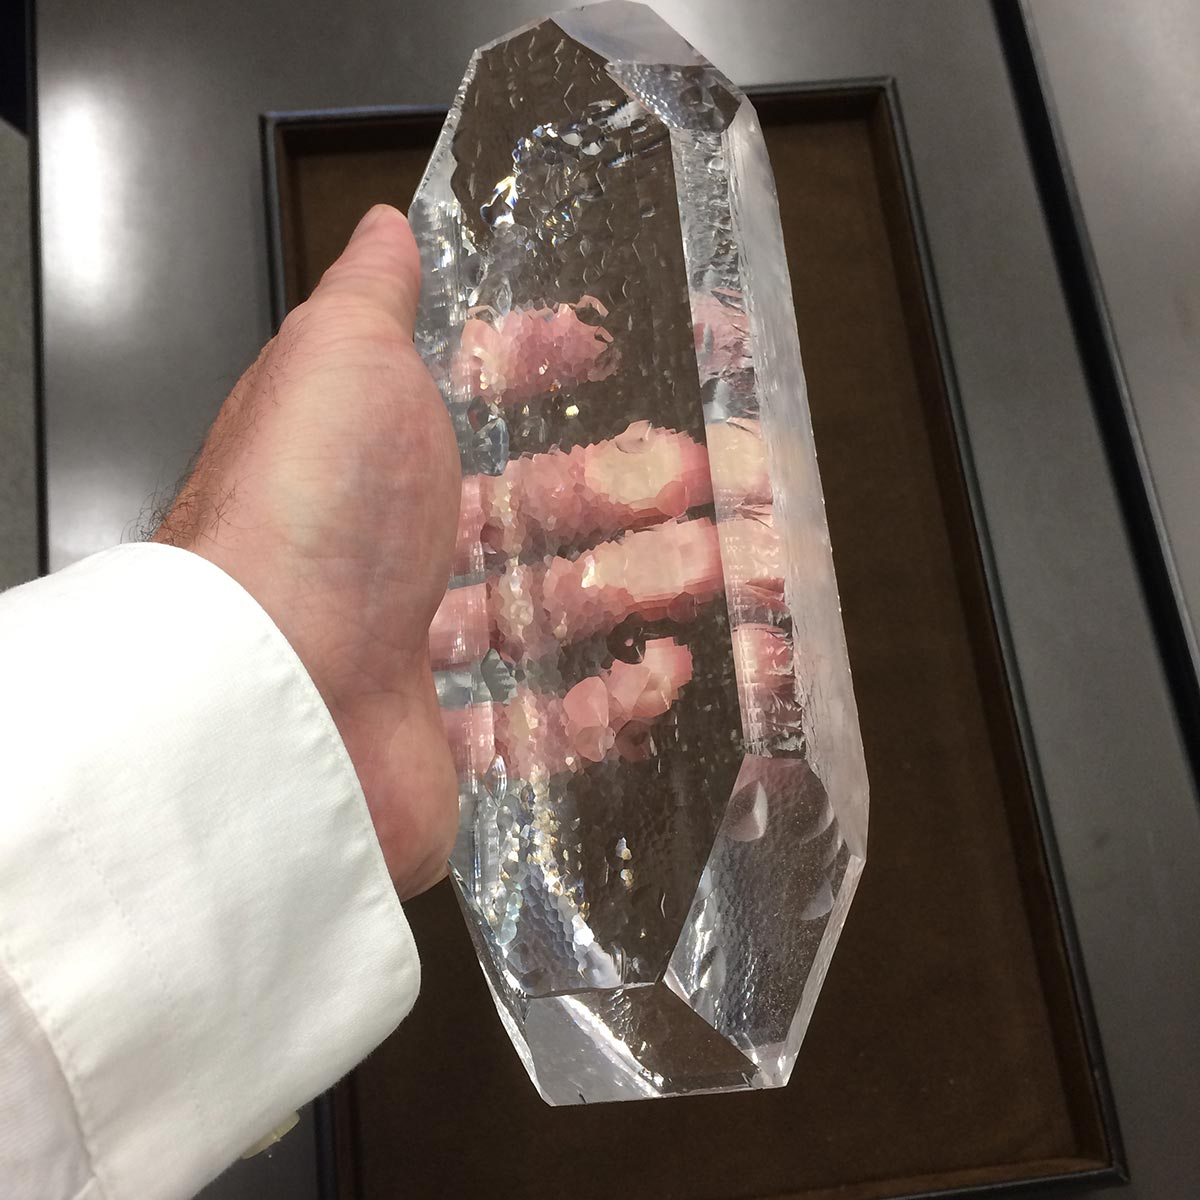 Seiko Quartz Crystal in my hands